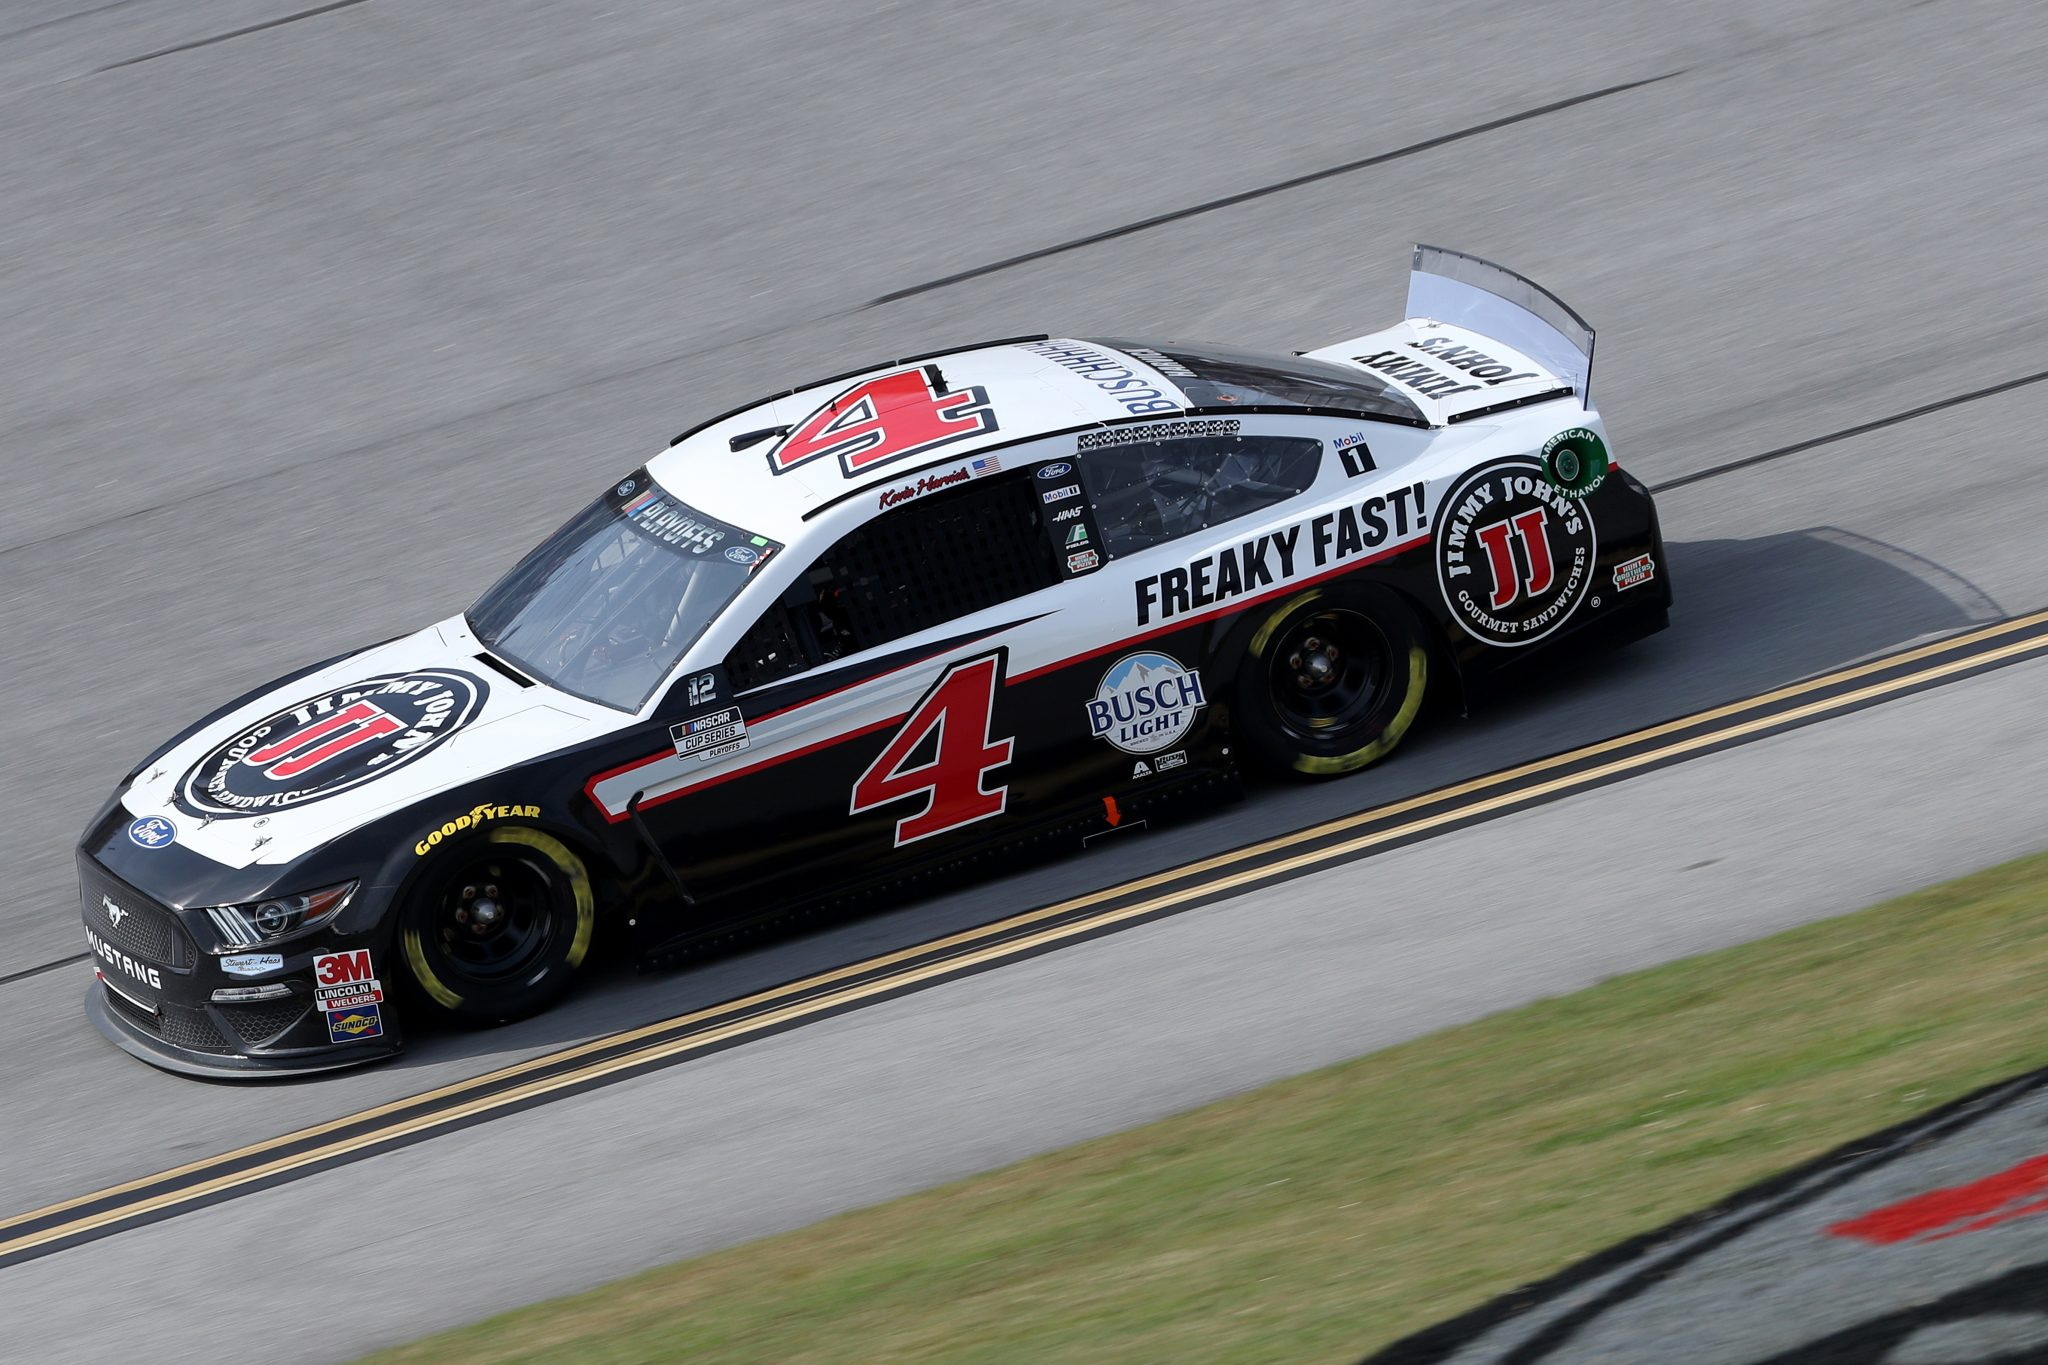 TALLADEGA, ALABAMA - OCTOBER 04: Kevin Harvick, driver of the #4 Jimmy John's Ford, drives during the NASCAR Cup Series YellaWood 500 at Talladega Superspeedway on October 04, 2020 in Talladega, Alabama. (Photo by Chris Graythen/Getty Images) | Getty Images